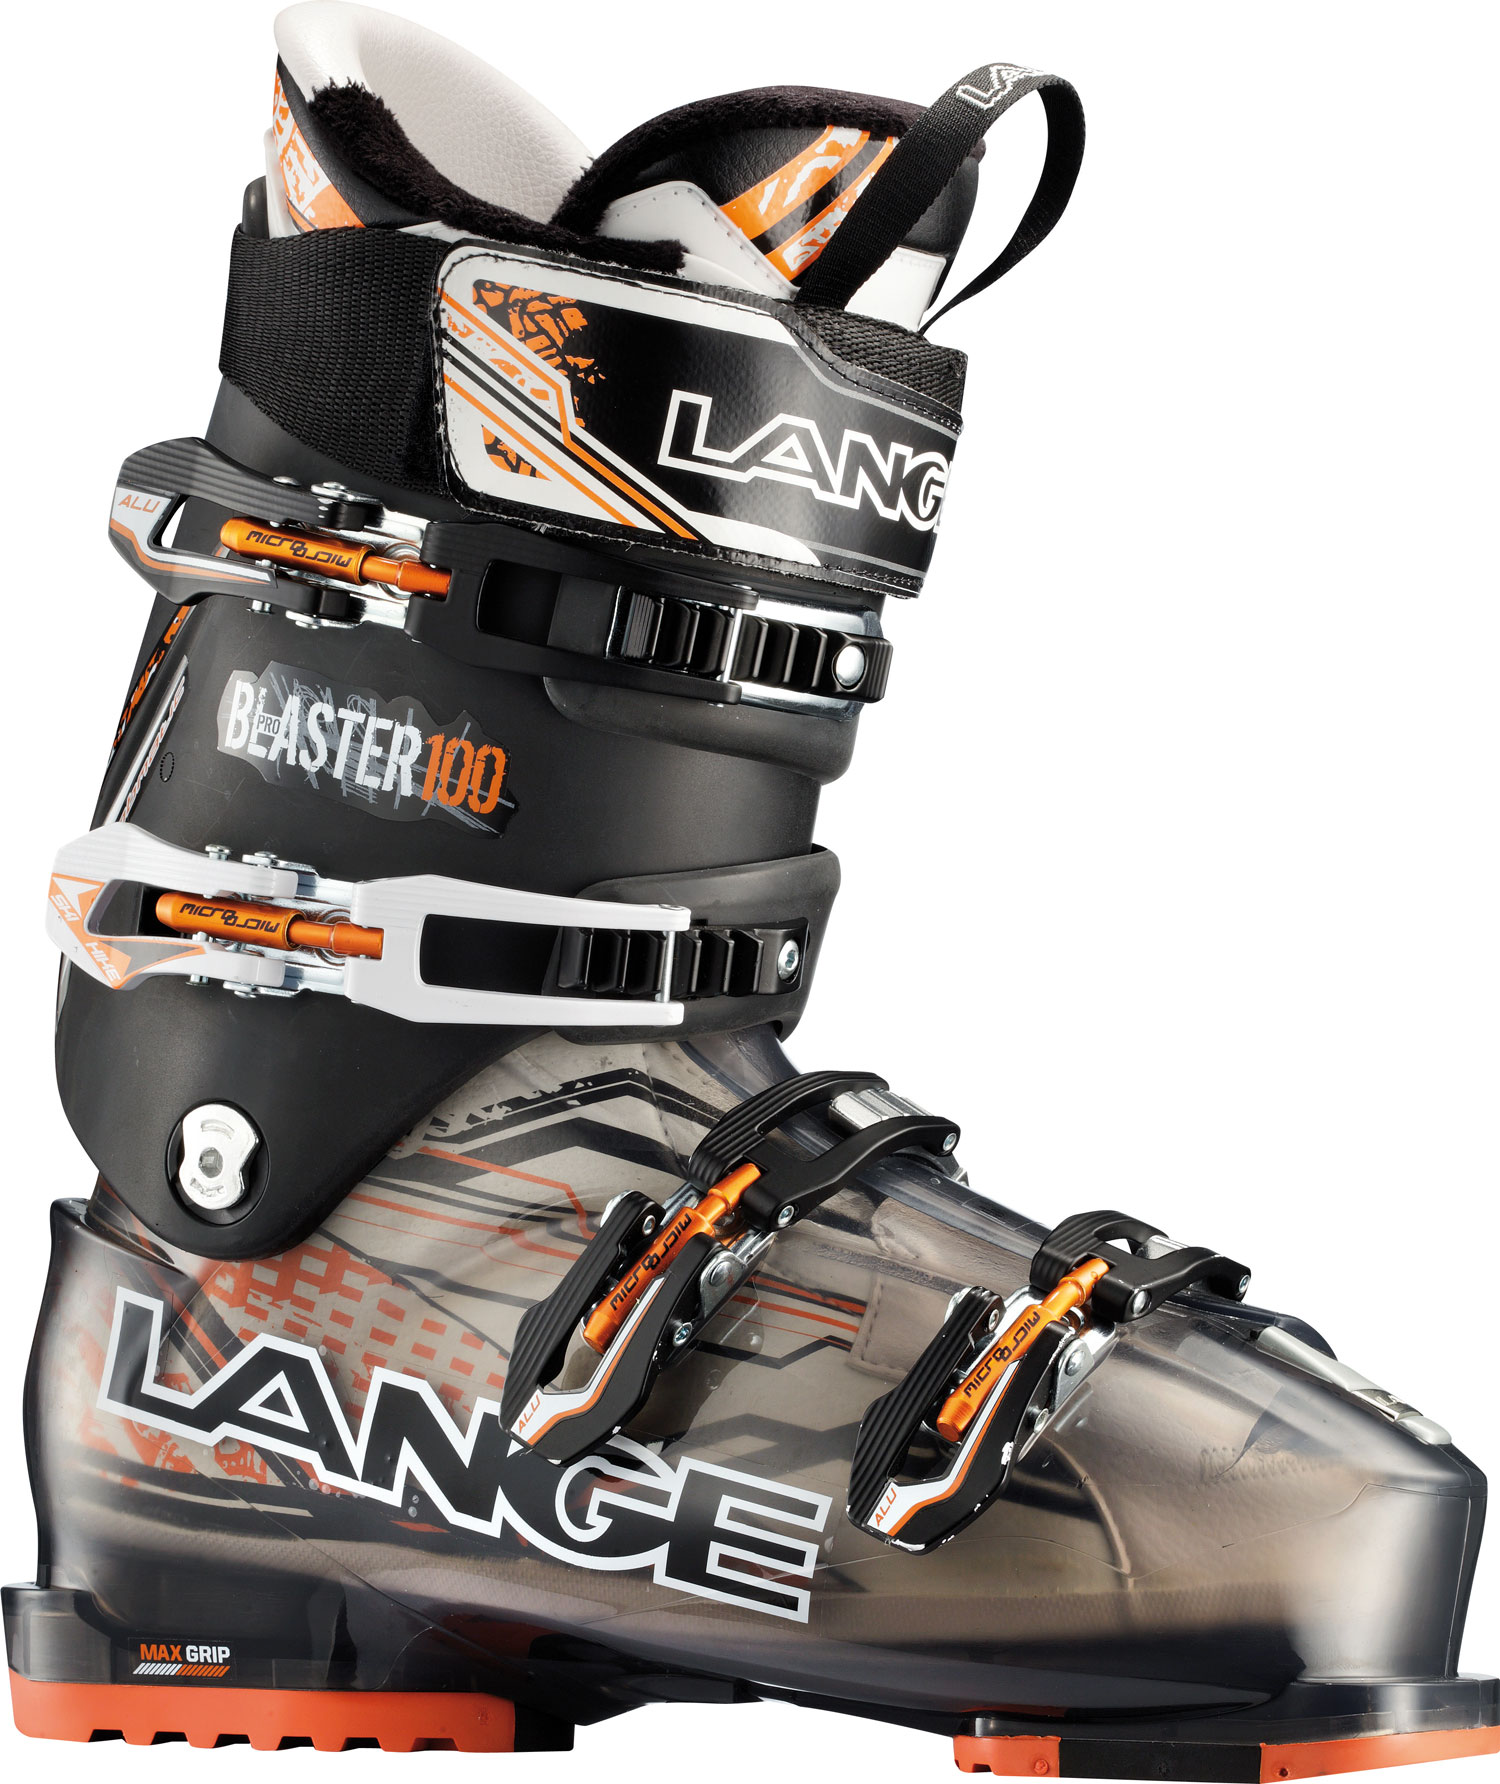 Ski Blaster boots deliver a unique blend of all-day comfort and all-mountain performance. Lange's Control Fit, 102mm last and easy entry/exit provides enhanced comfort and warmth. The easy-to-use ski/hike feature and Ultra-Grip replaceable soles provide increased comfort and traction for quick hikes or extended apres ski. Meanwhile the narrower, more articulated heel pocket and modern and efficient stance provides exceptional lateral quickness and downhill performance simply not found in other 102mm boots.Key Features of the Lange Blaster Pro Ski Boots: Last Width 102mm Flex Index 100 Liner Control Fit Canting +/- 1,5 degree Power Strap 50mm Shell Material Polyurethane Cuff Material Polyolefin Hp Soles Max Grip - $329.95